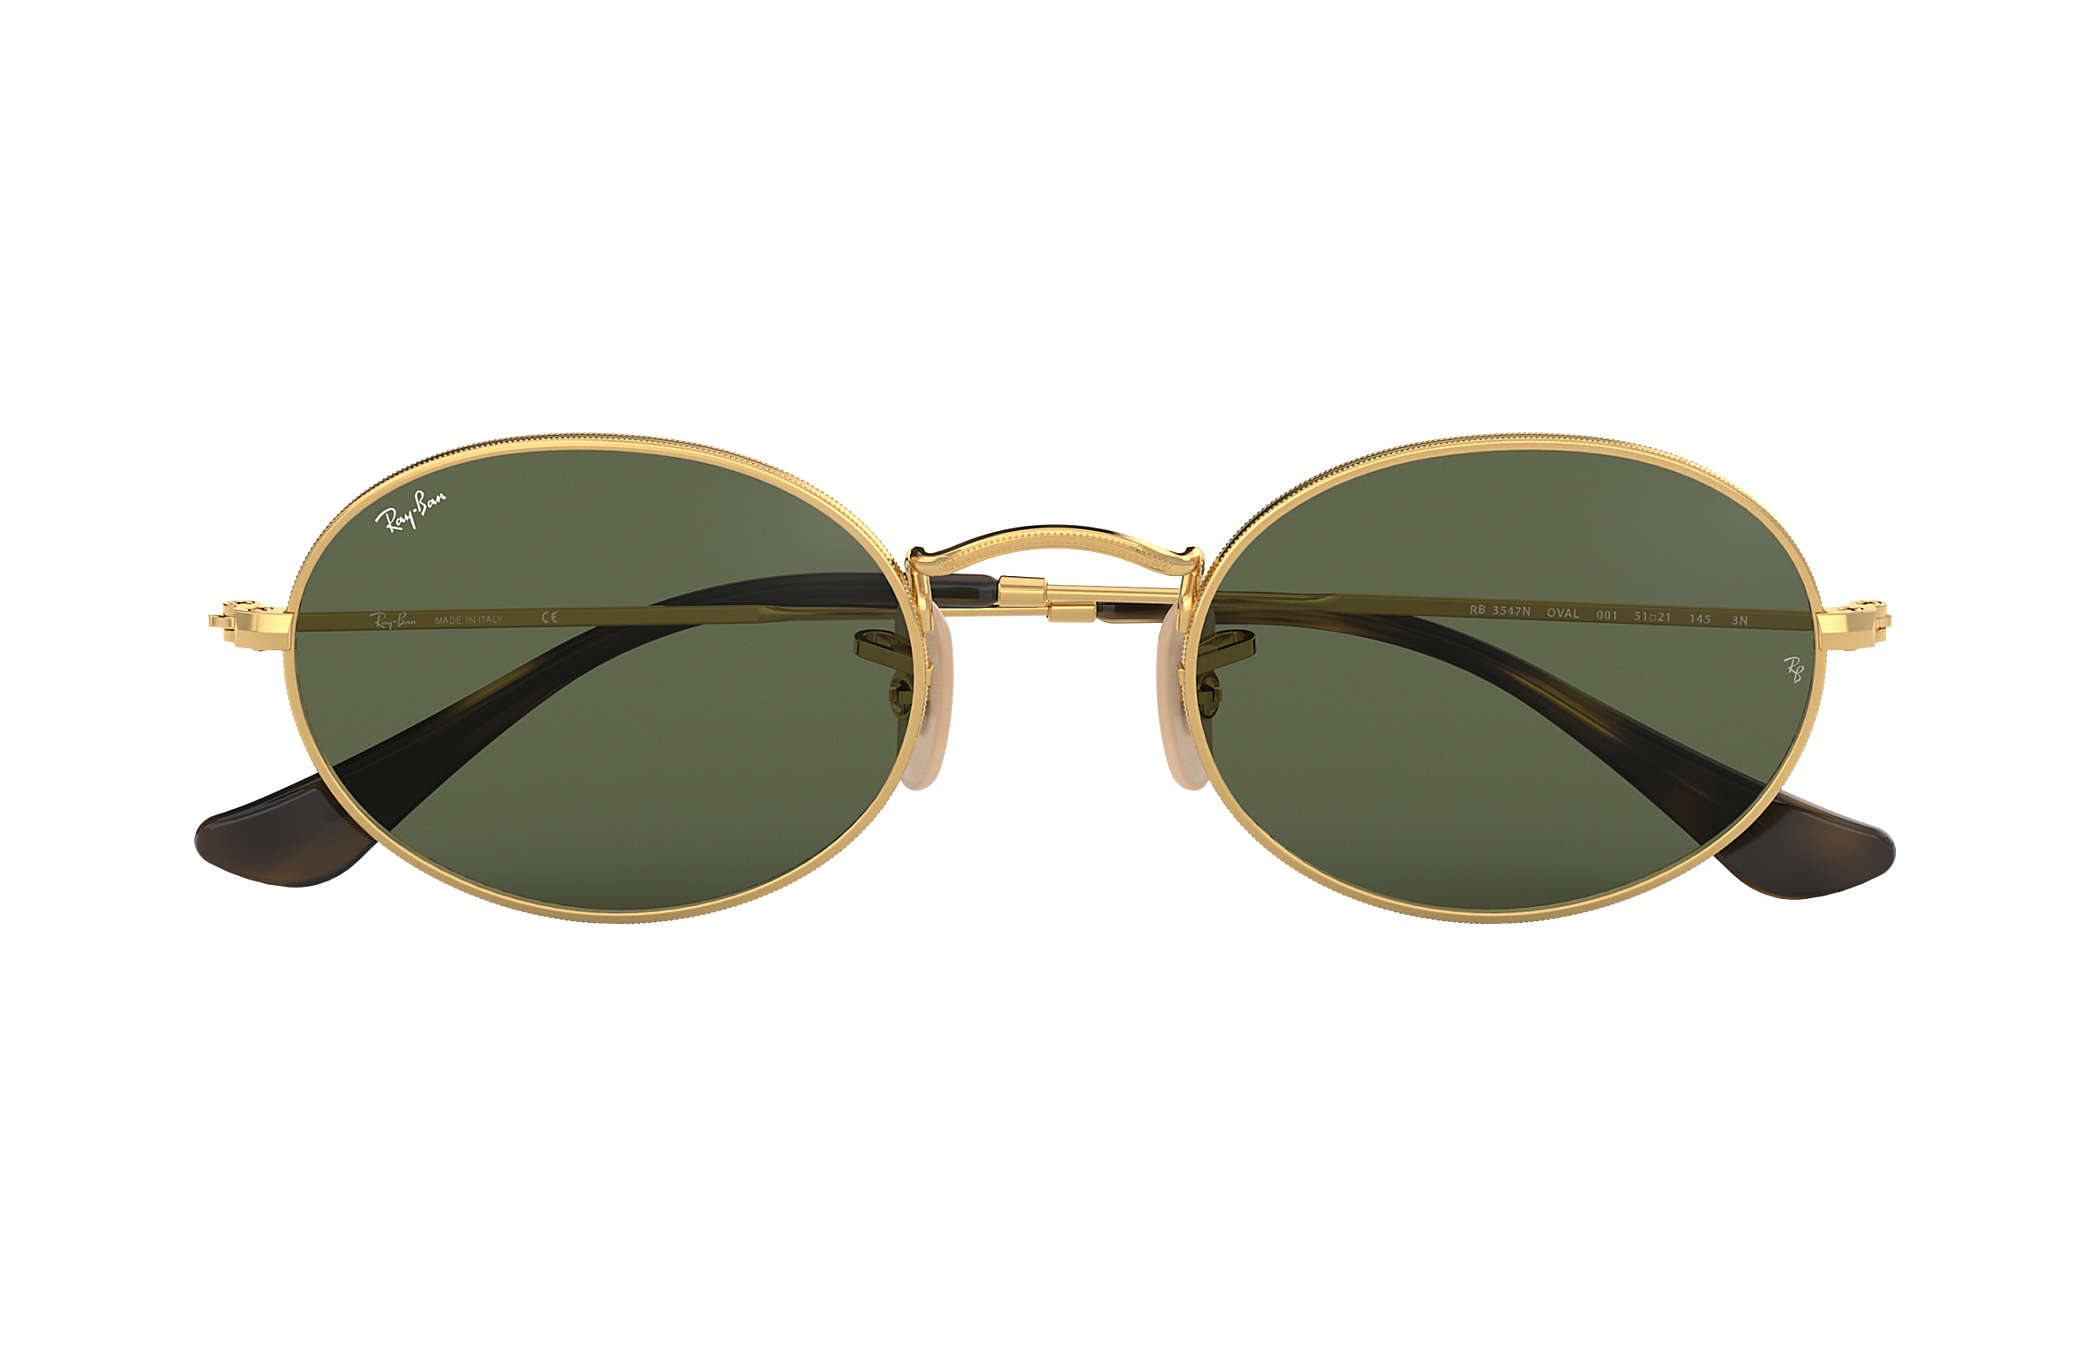 ray ban oval sunglasses price